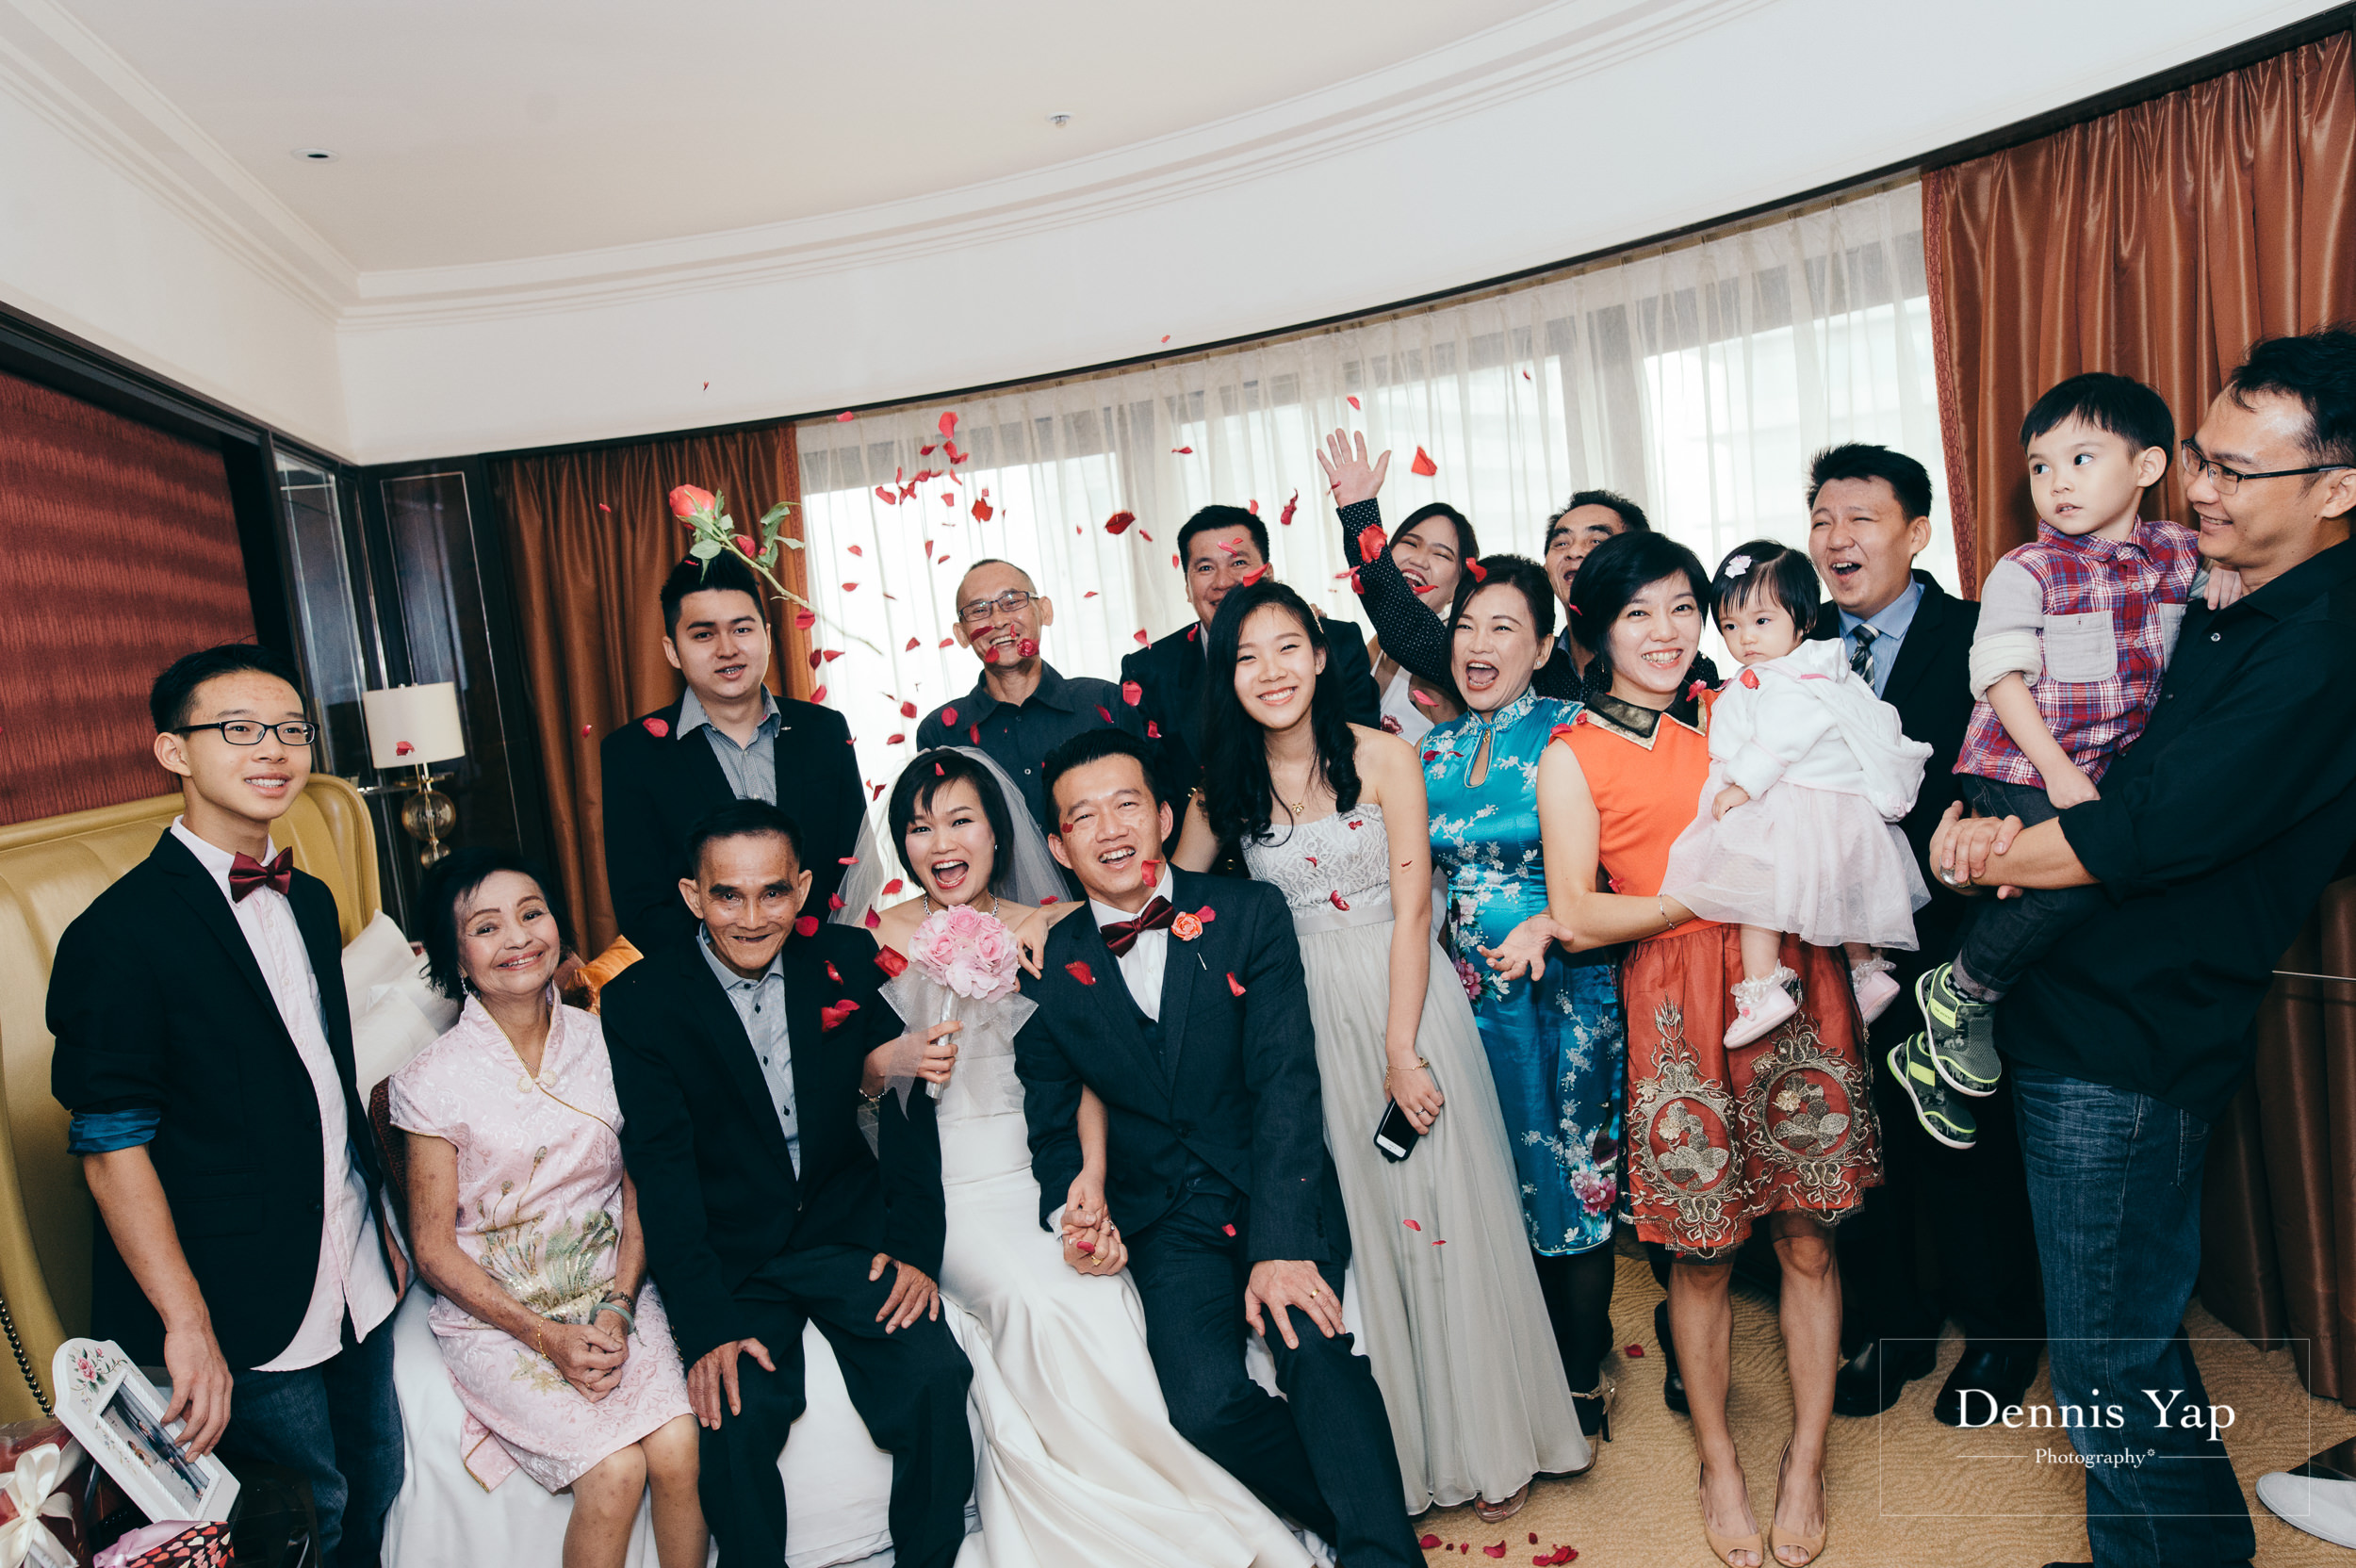 boon weng cyndy simple wedding gate crash luncheon shangrila kuala lumpur red traditional dennis yap photography-117.jpg